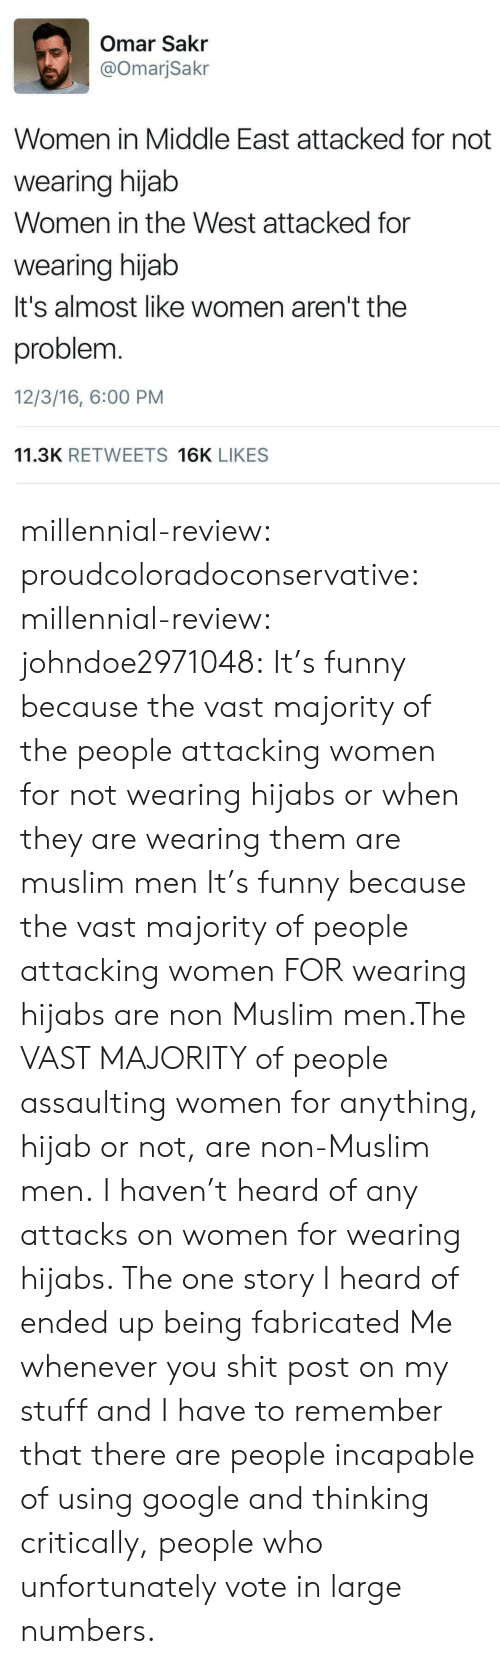 Funny, Gif, and Google: Omar Sakr  @OmarjSakr  Women in Middle East attacked for not  wearing hijab  Women in the West attacked for  wearing hijab  It's almost like women aren't the  problem.  12/3/16, 6:00 PM  11.3K RETWEETS 16K LIKES millennial-review:  proudcoloradoconservative:  millennial-review:  johndoe2971048:  It's funny because the vast majority of the people attacking women for not wearing hijabs or when they are wearing them are muslim men  It's funny because the vast majority of people attacking women FOR wearing hijabs are non Muslim men.The VAST MAJORITY of people assaulting women for anything, hijab or not, are non-Muslim men.  I haven't heard of any attacks on women for wearing hijabs. The one story I heard of ended up being fabricated  Me whenever you shit post on my stuff and I have to remember that there are people incapable of using google and thinking critically, people who unfortunately vote in large numbers.